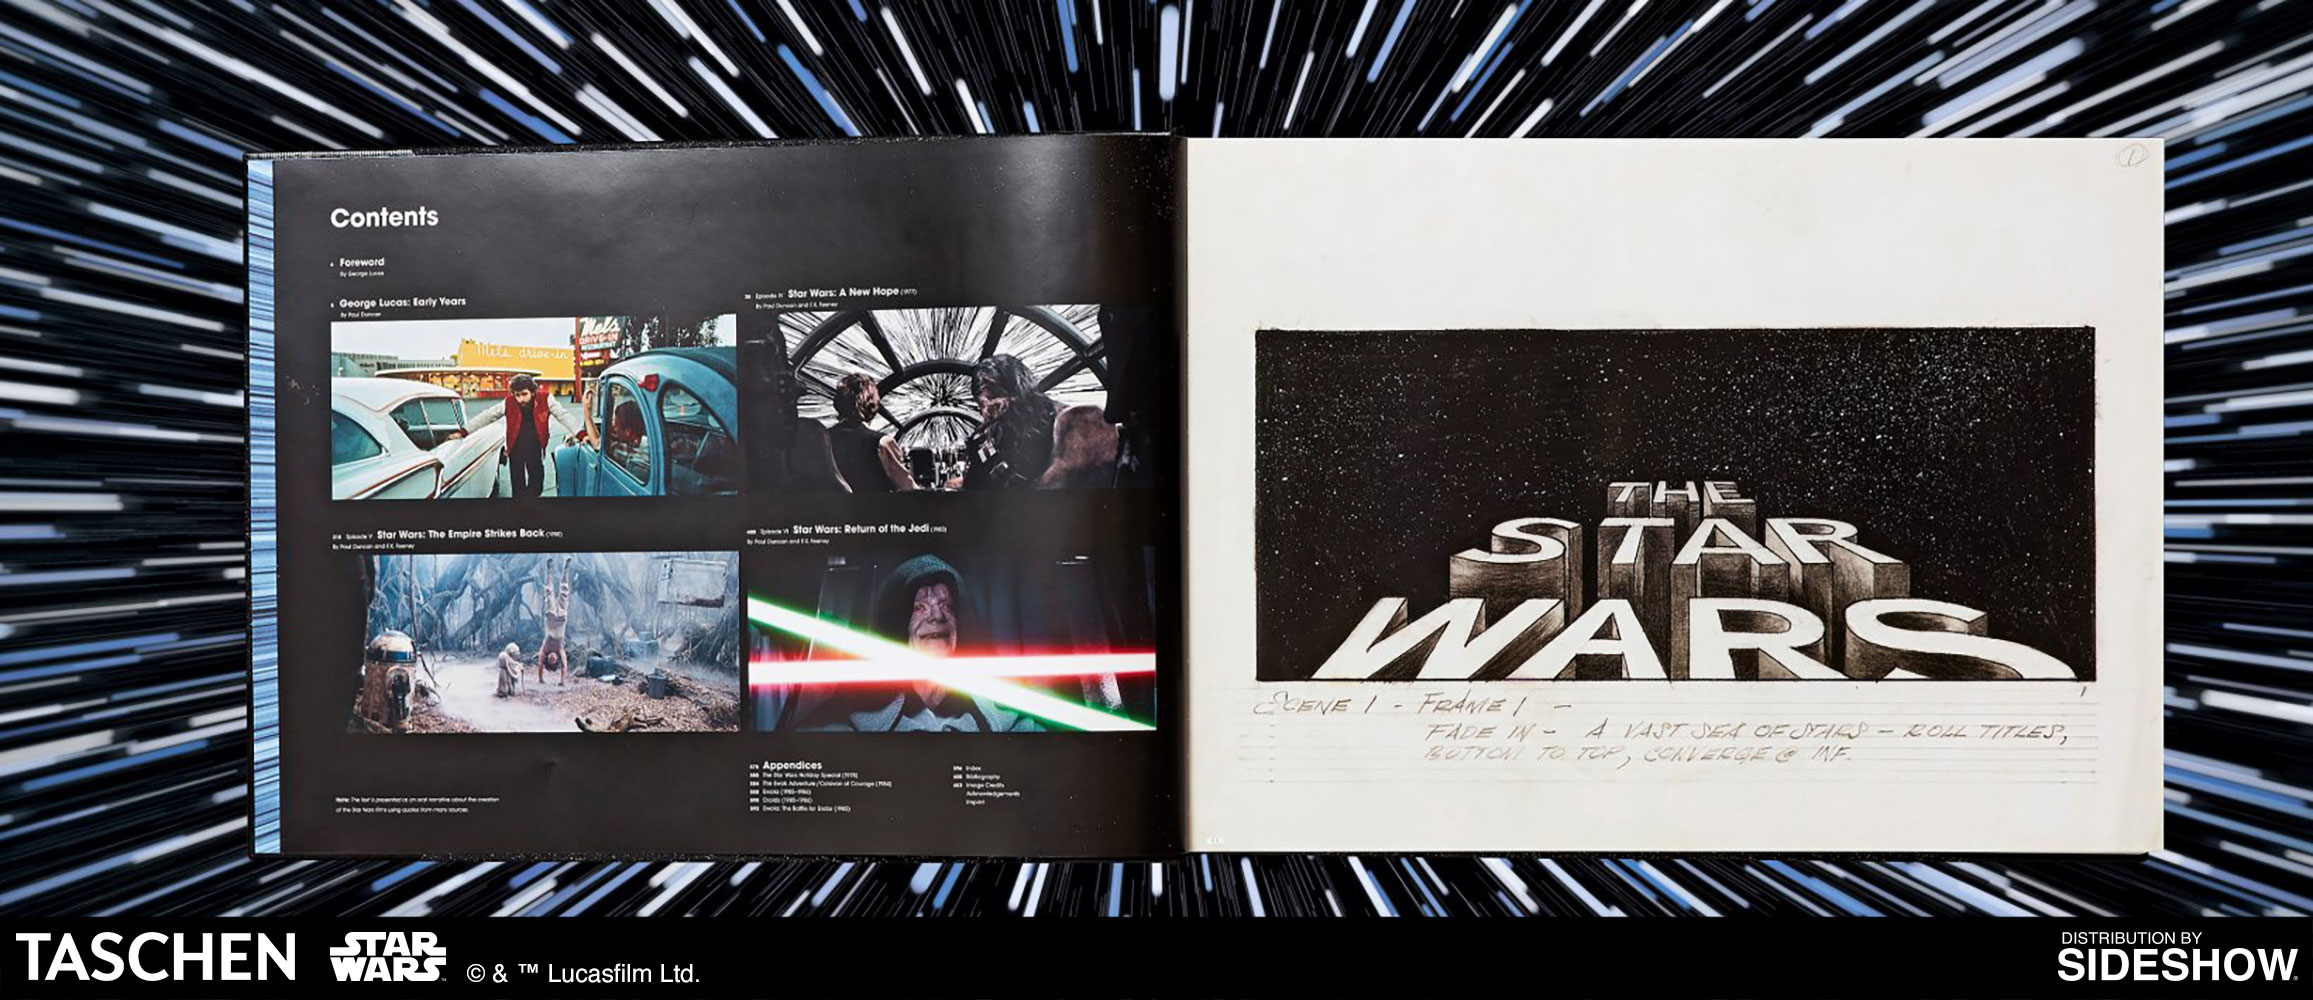 Taschen The Star Wars Archives 1977 1983 Hardcover Book Sideshow Collectibles